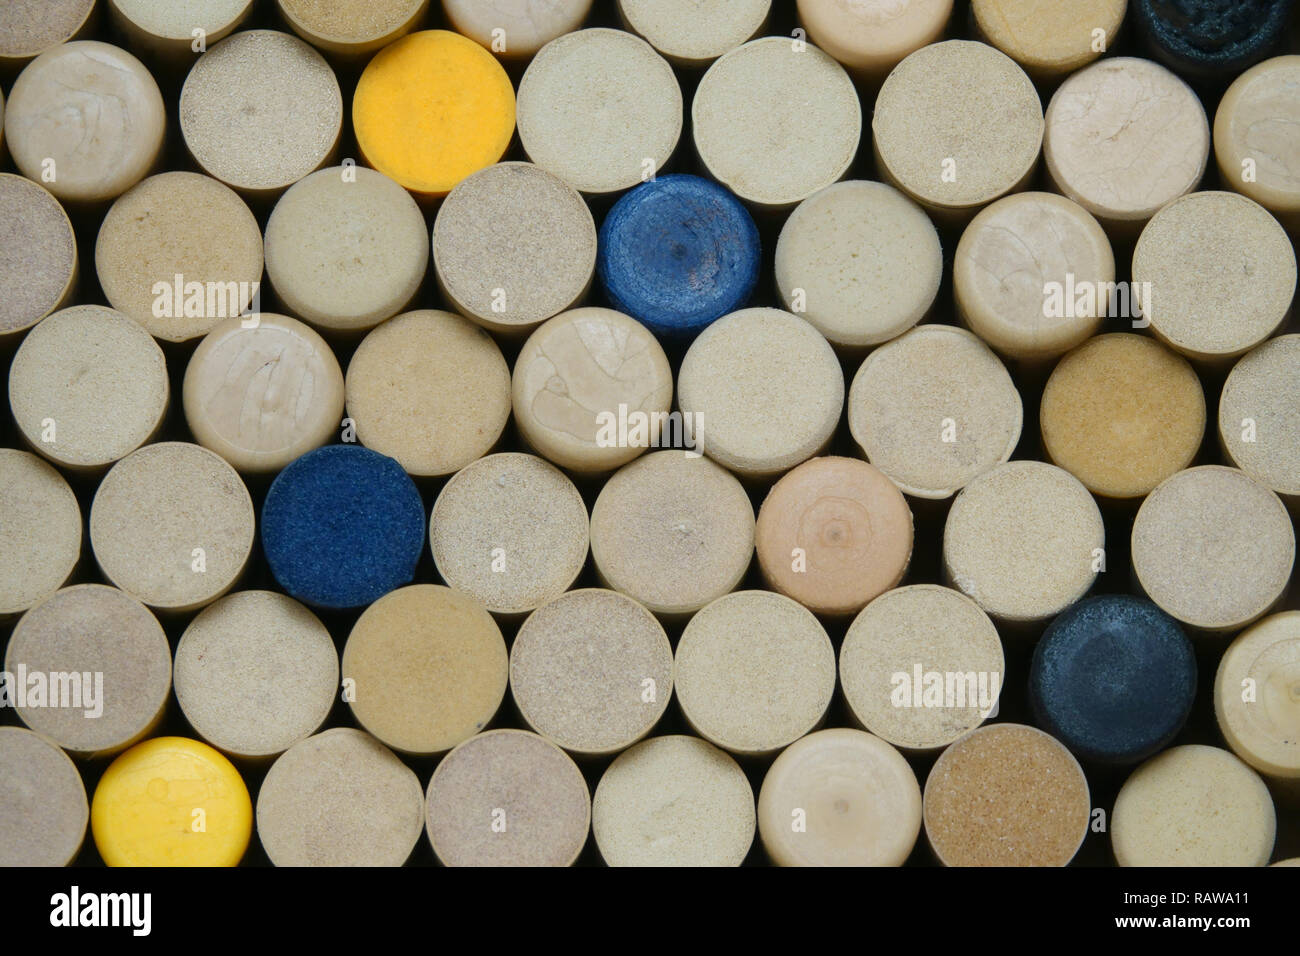 The tops of synthetic, colorful wine corks are shown loosely stacked in a closeup view. - Stock Image